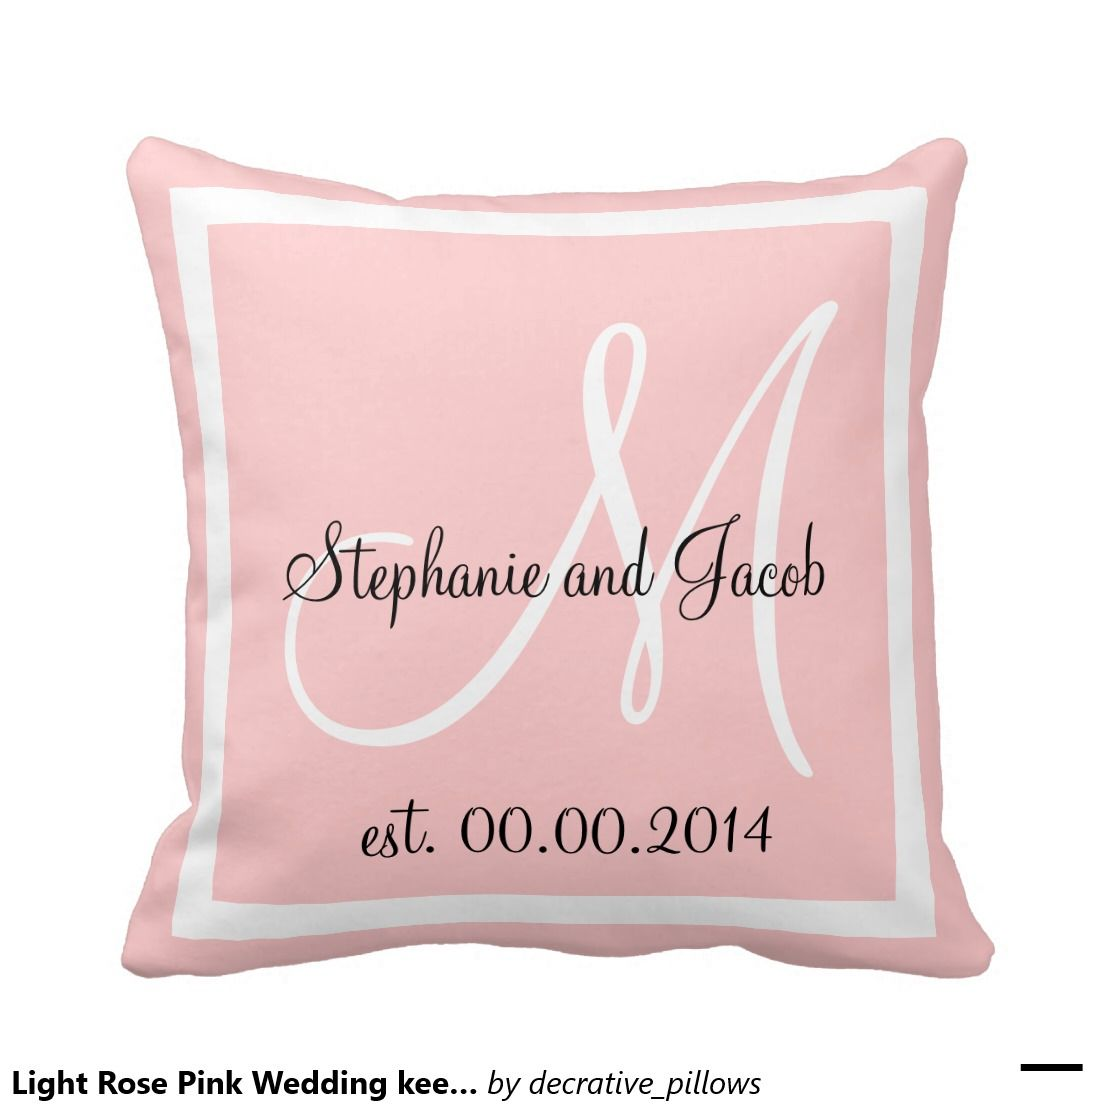 Light Rose Pink Wedding keepsake pillow | Ring Bearer : Pillows ...